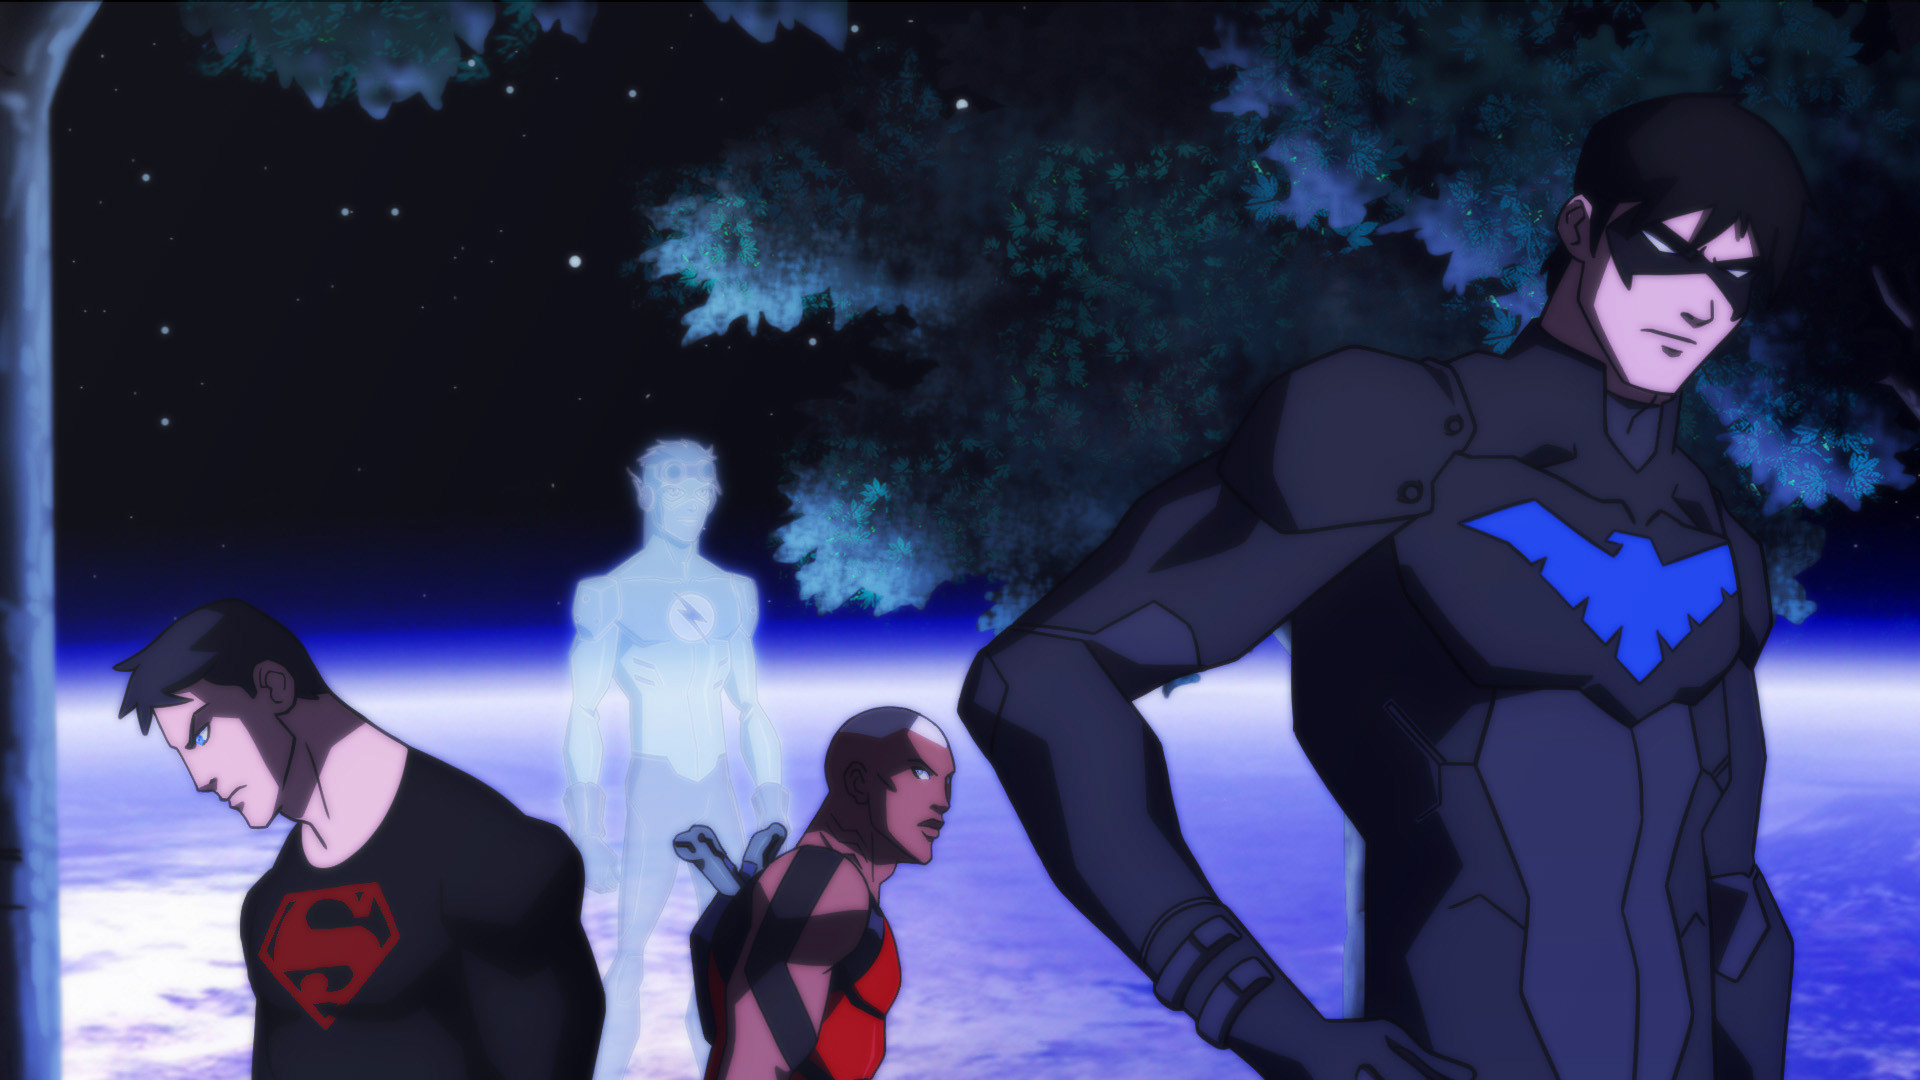 1920x1080 Cartoon - Young Justice Nightwing Superboy Aqualad Wallpaper